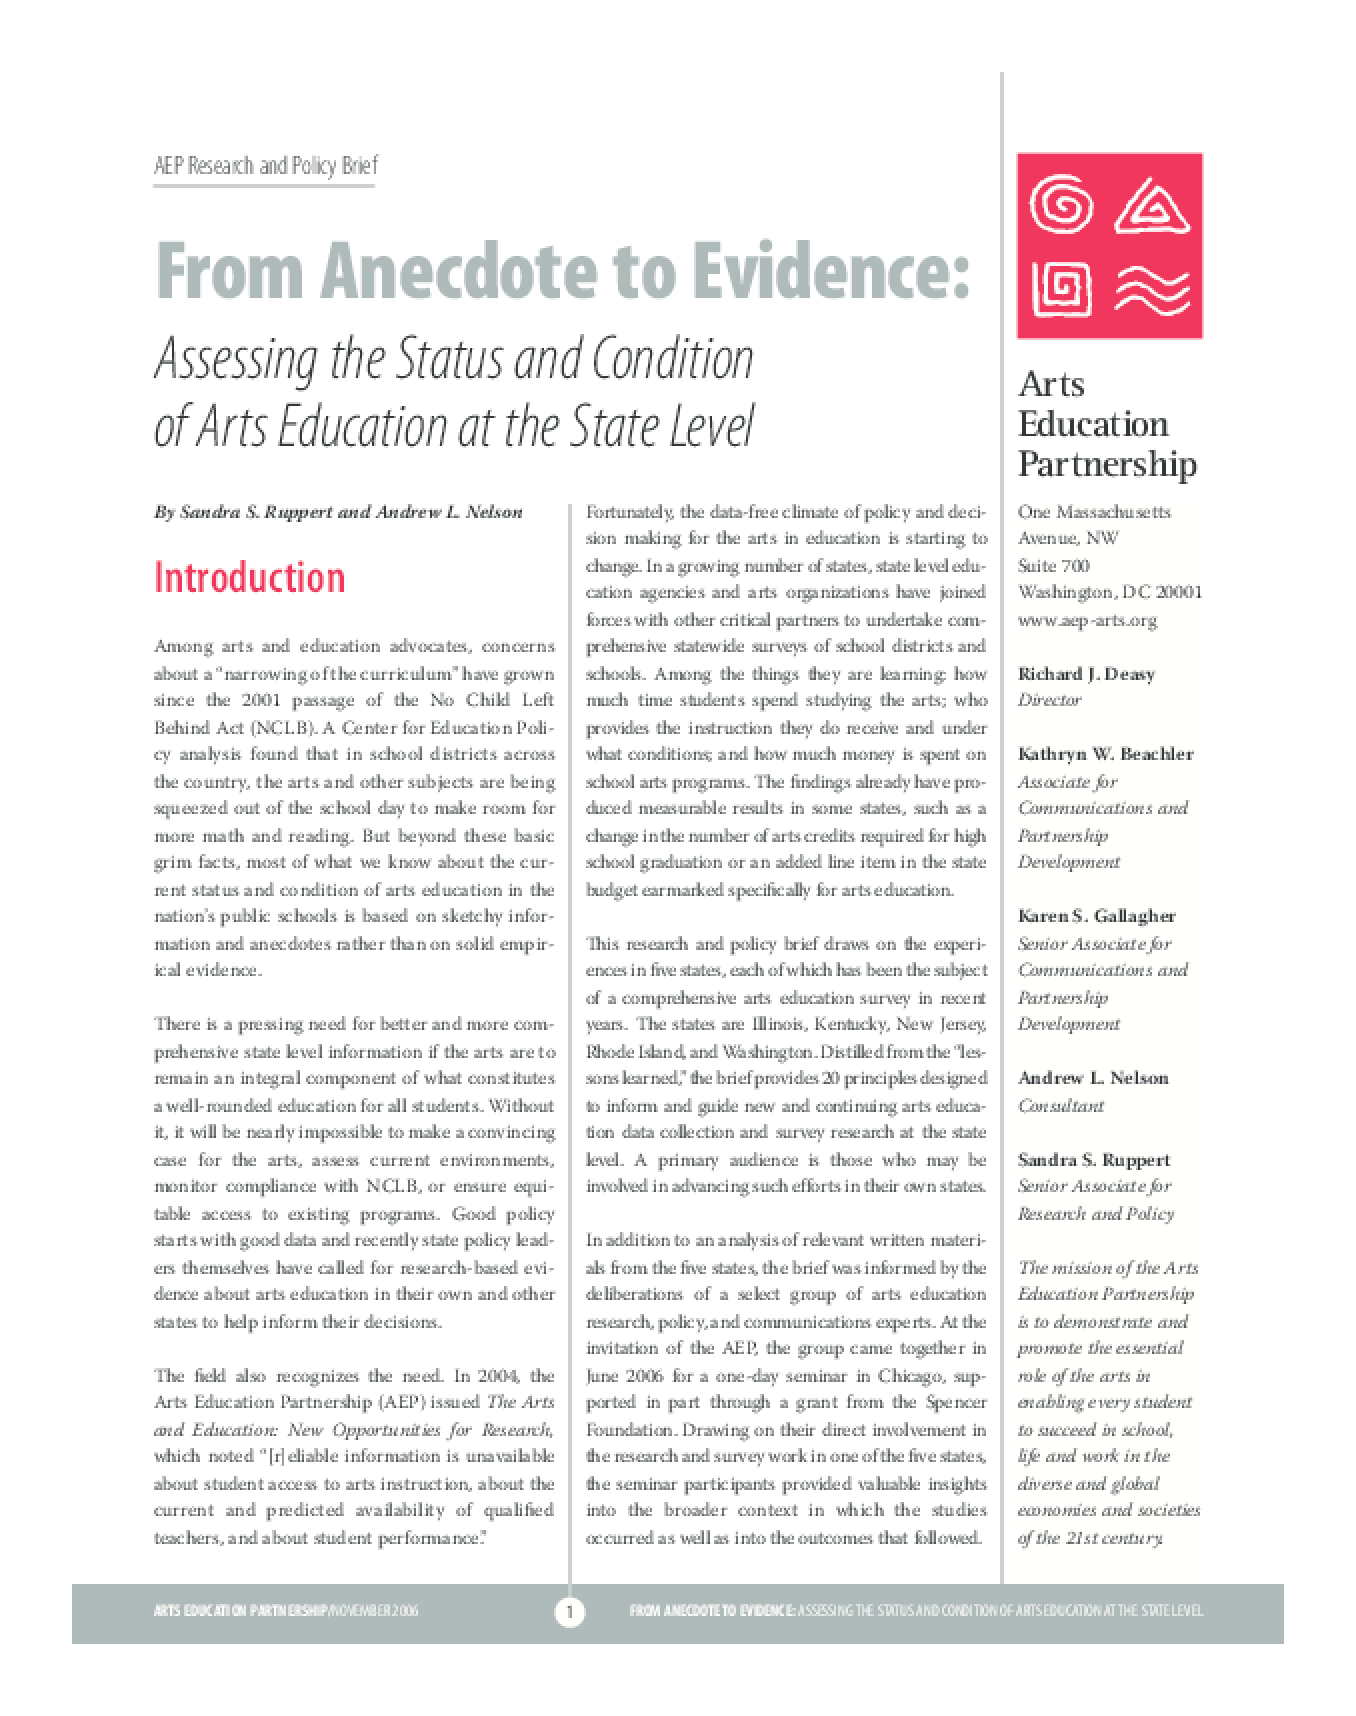 From Anecdote to Evidence: Assessing the Status and Condition of Arts Education at the State Level